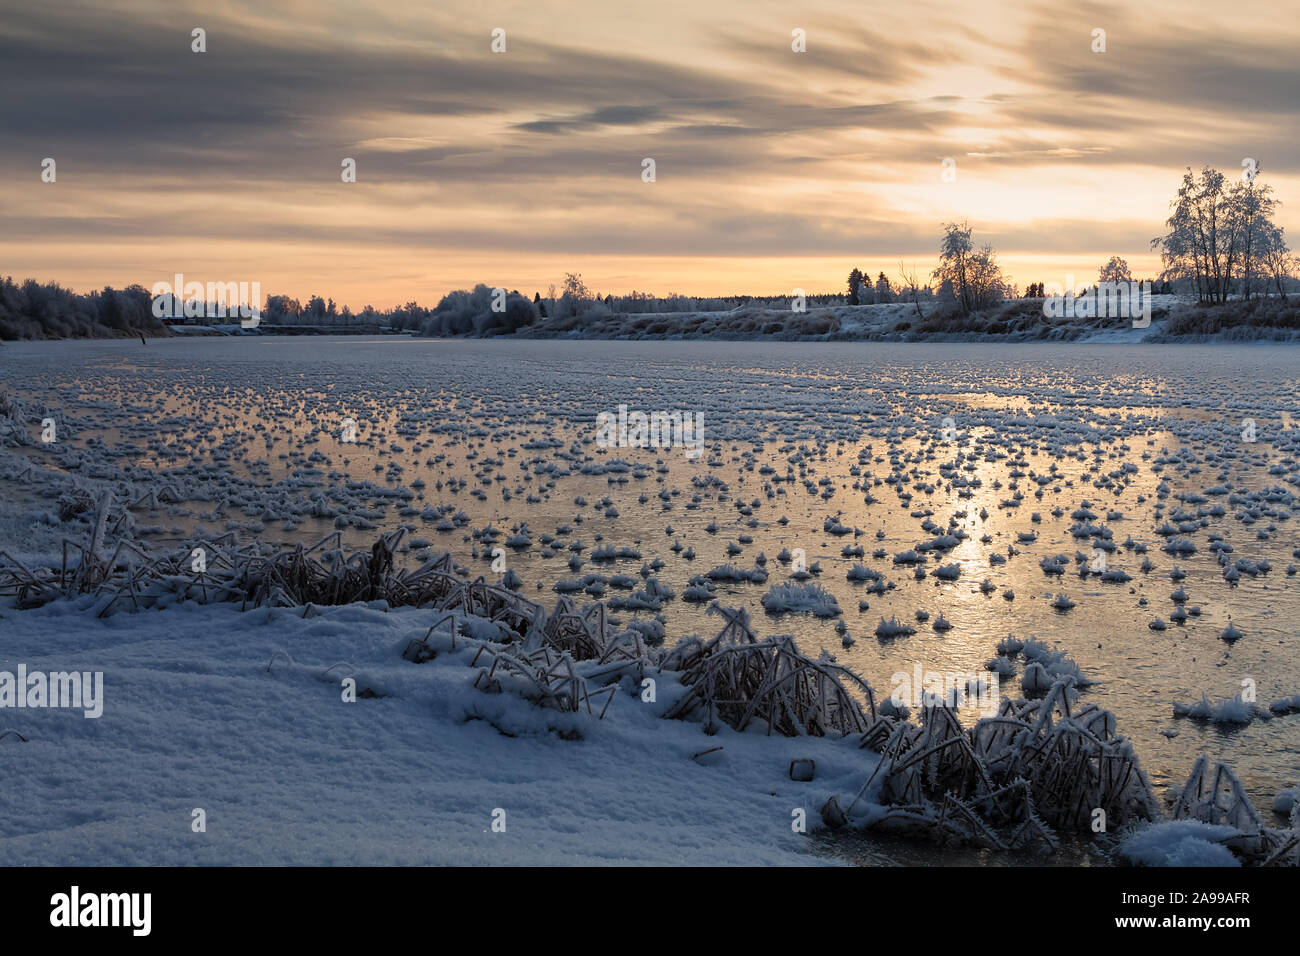 The winter sun rises over the freezing river at the Northern Finland. The river surface is covered with spiked frost formations. Stock Photo